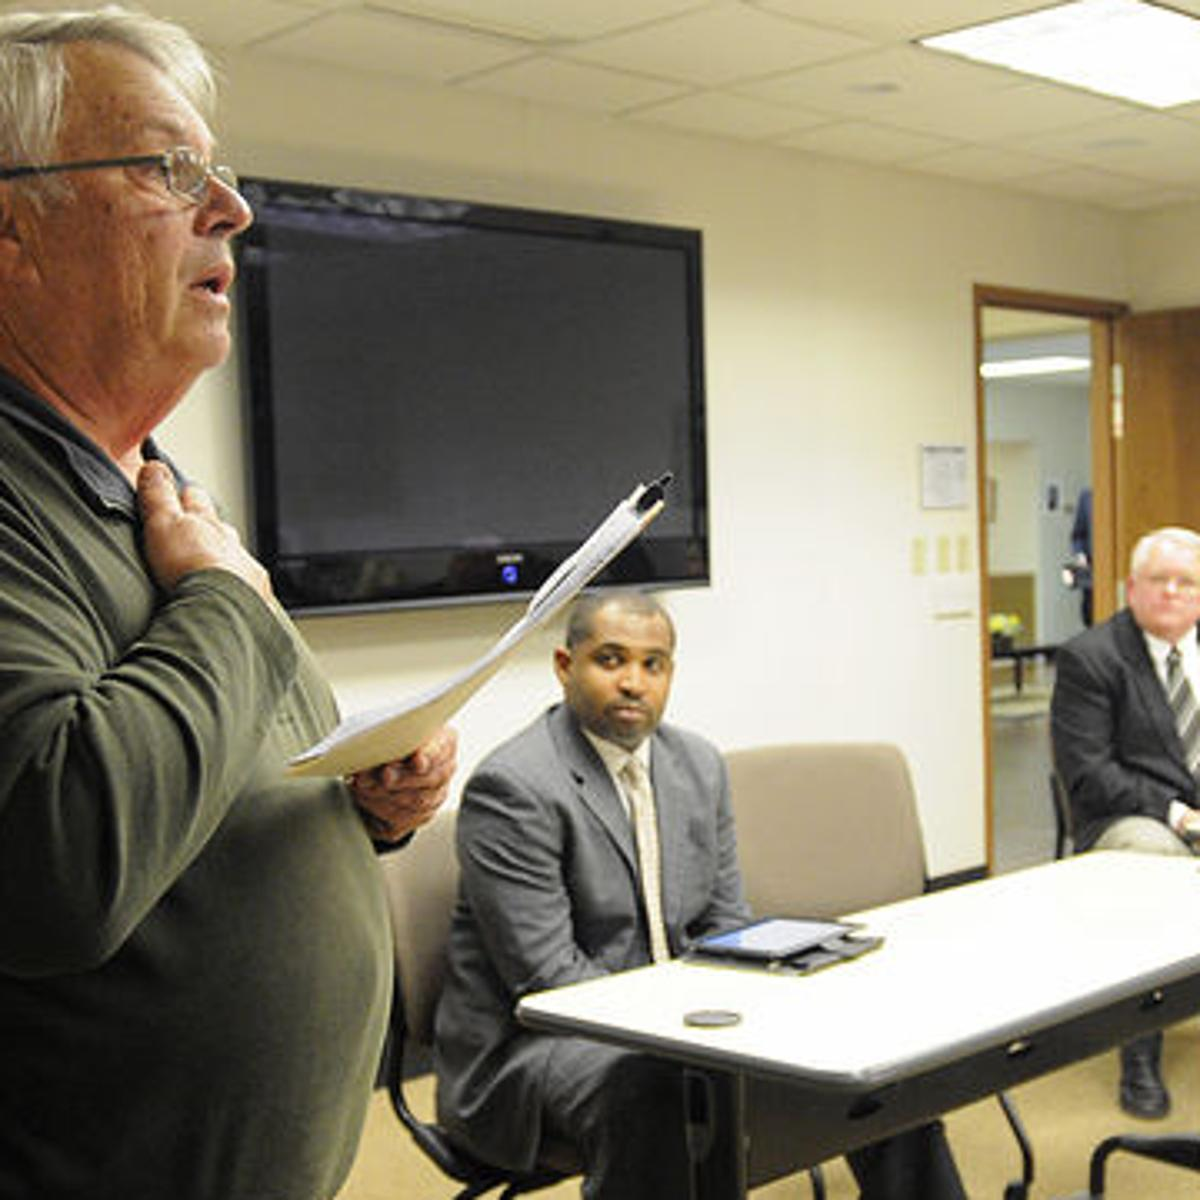 IDOT chief urges quick resolution on Illiana Expressway